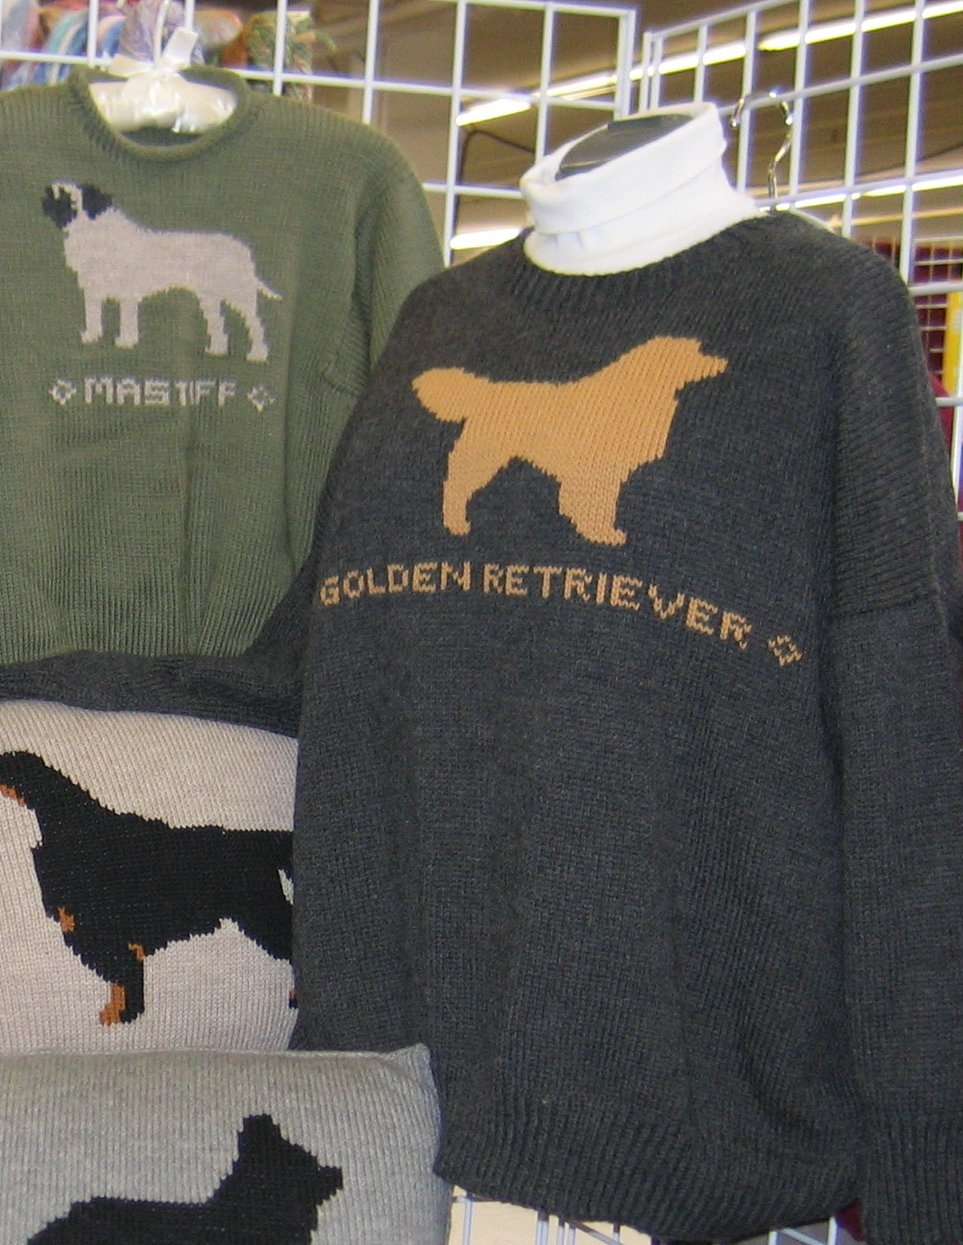 You too can knit sweaters like these.